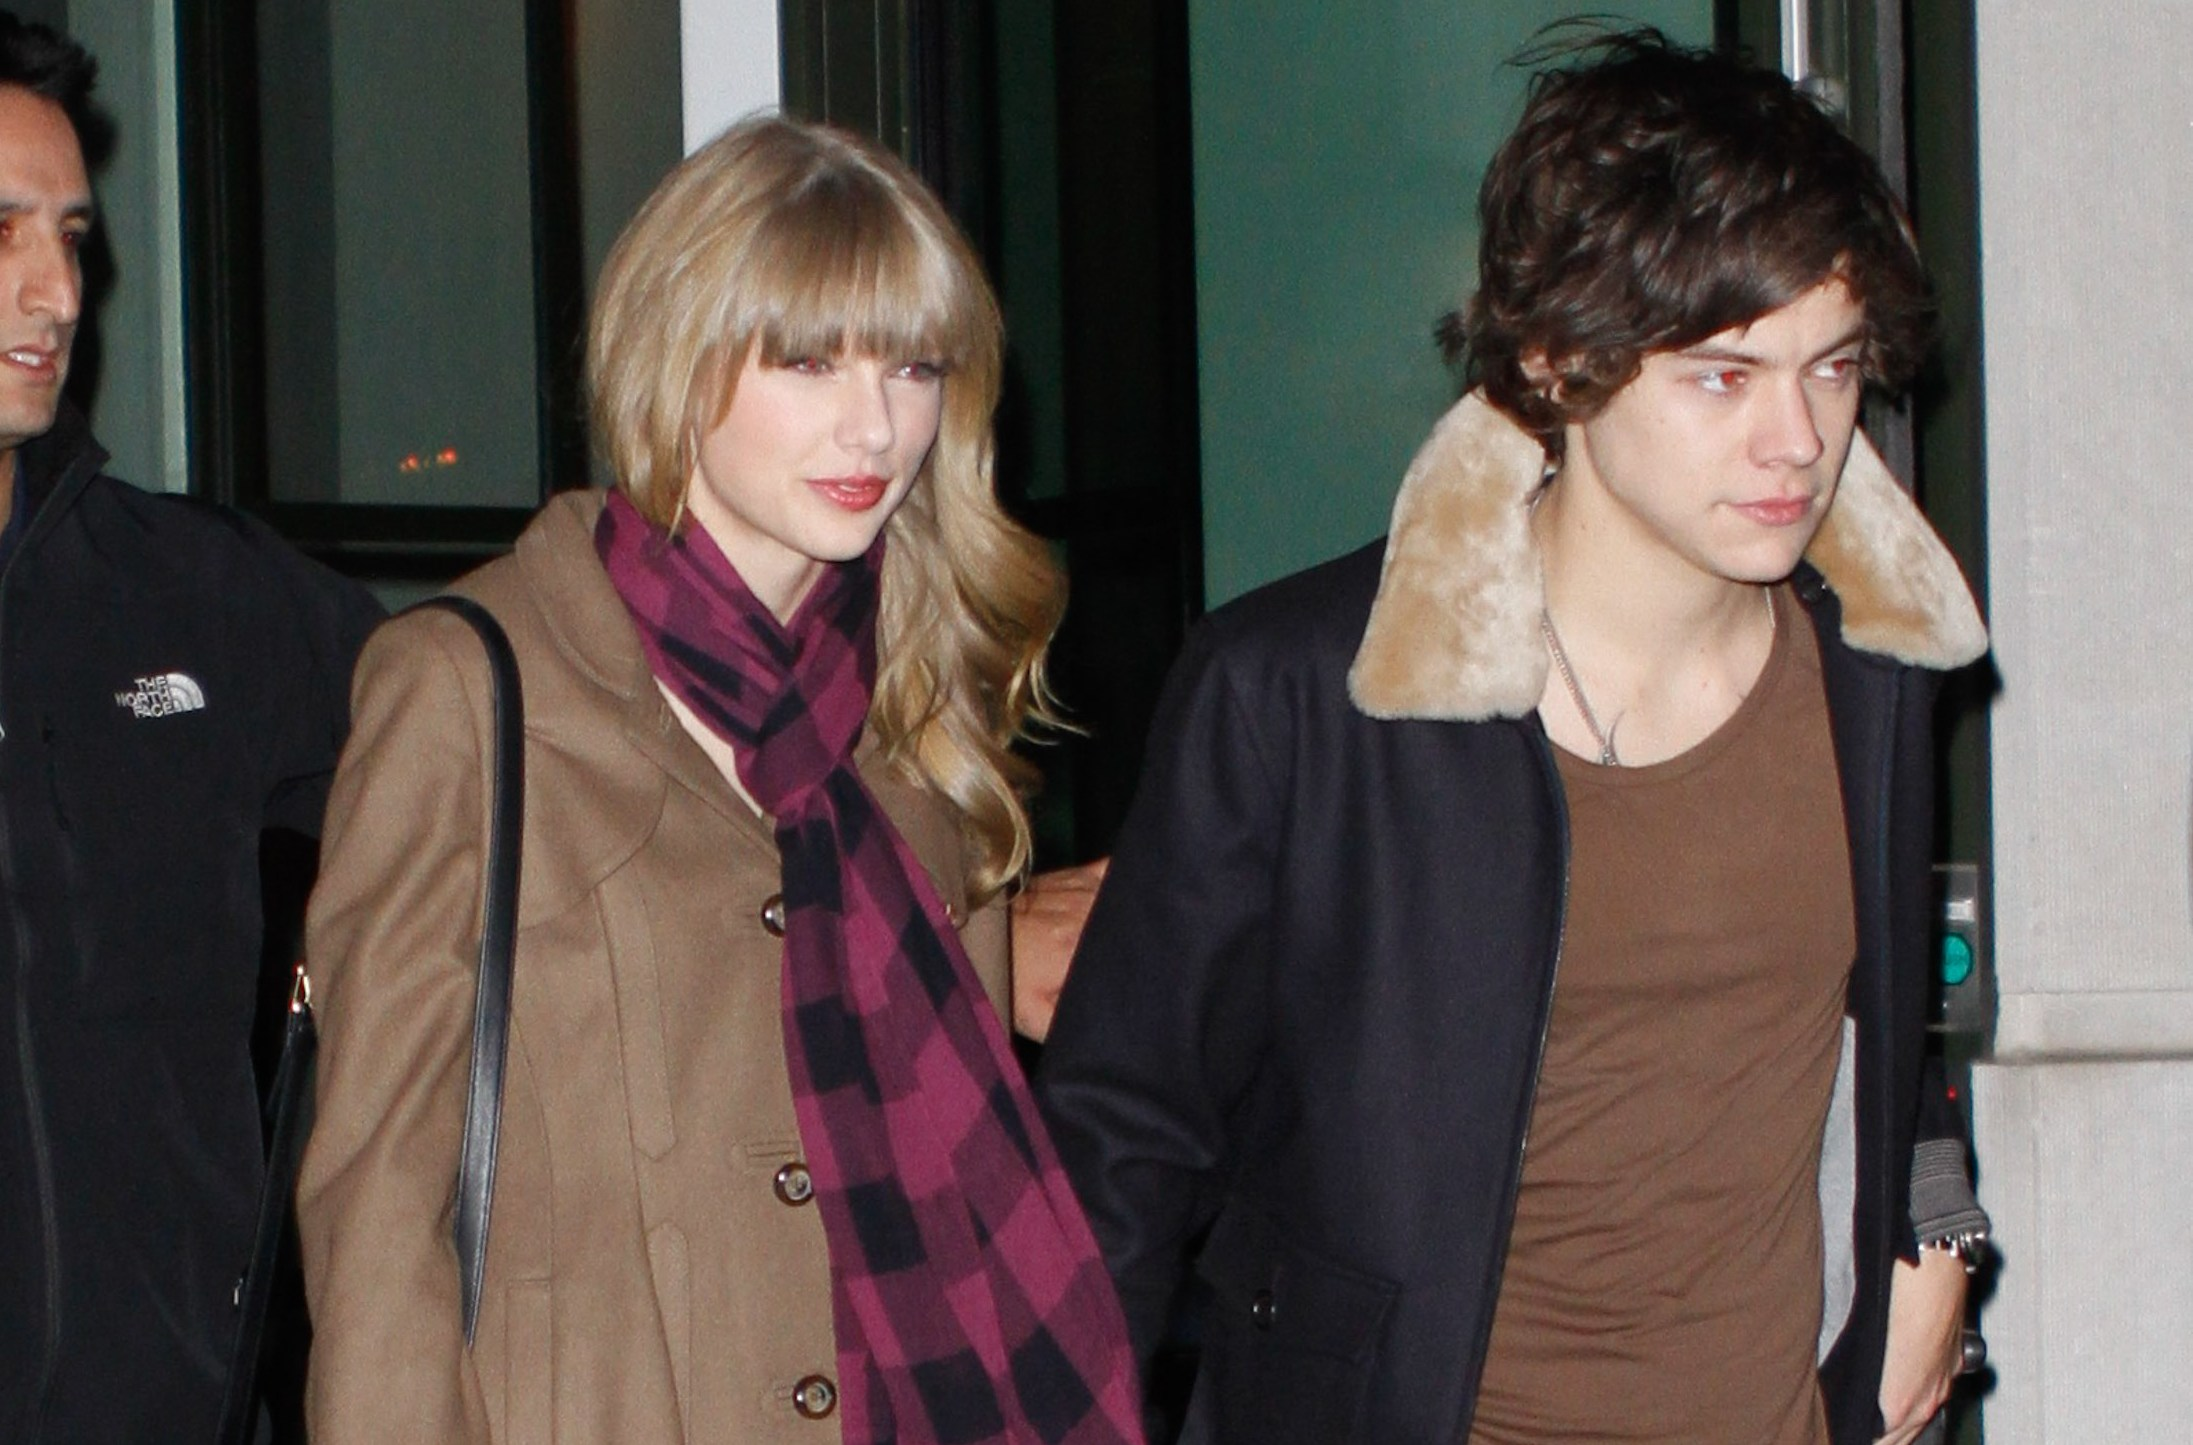 Taylor Swift and Harry Styles Awkward